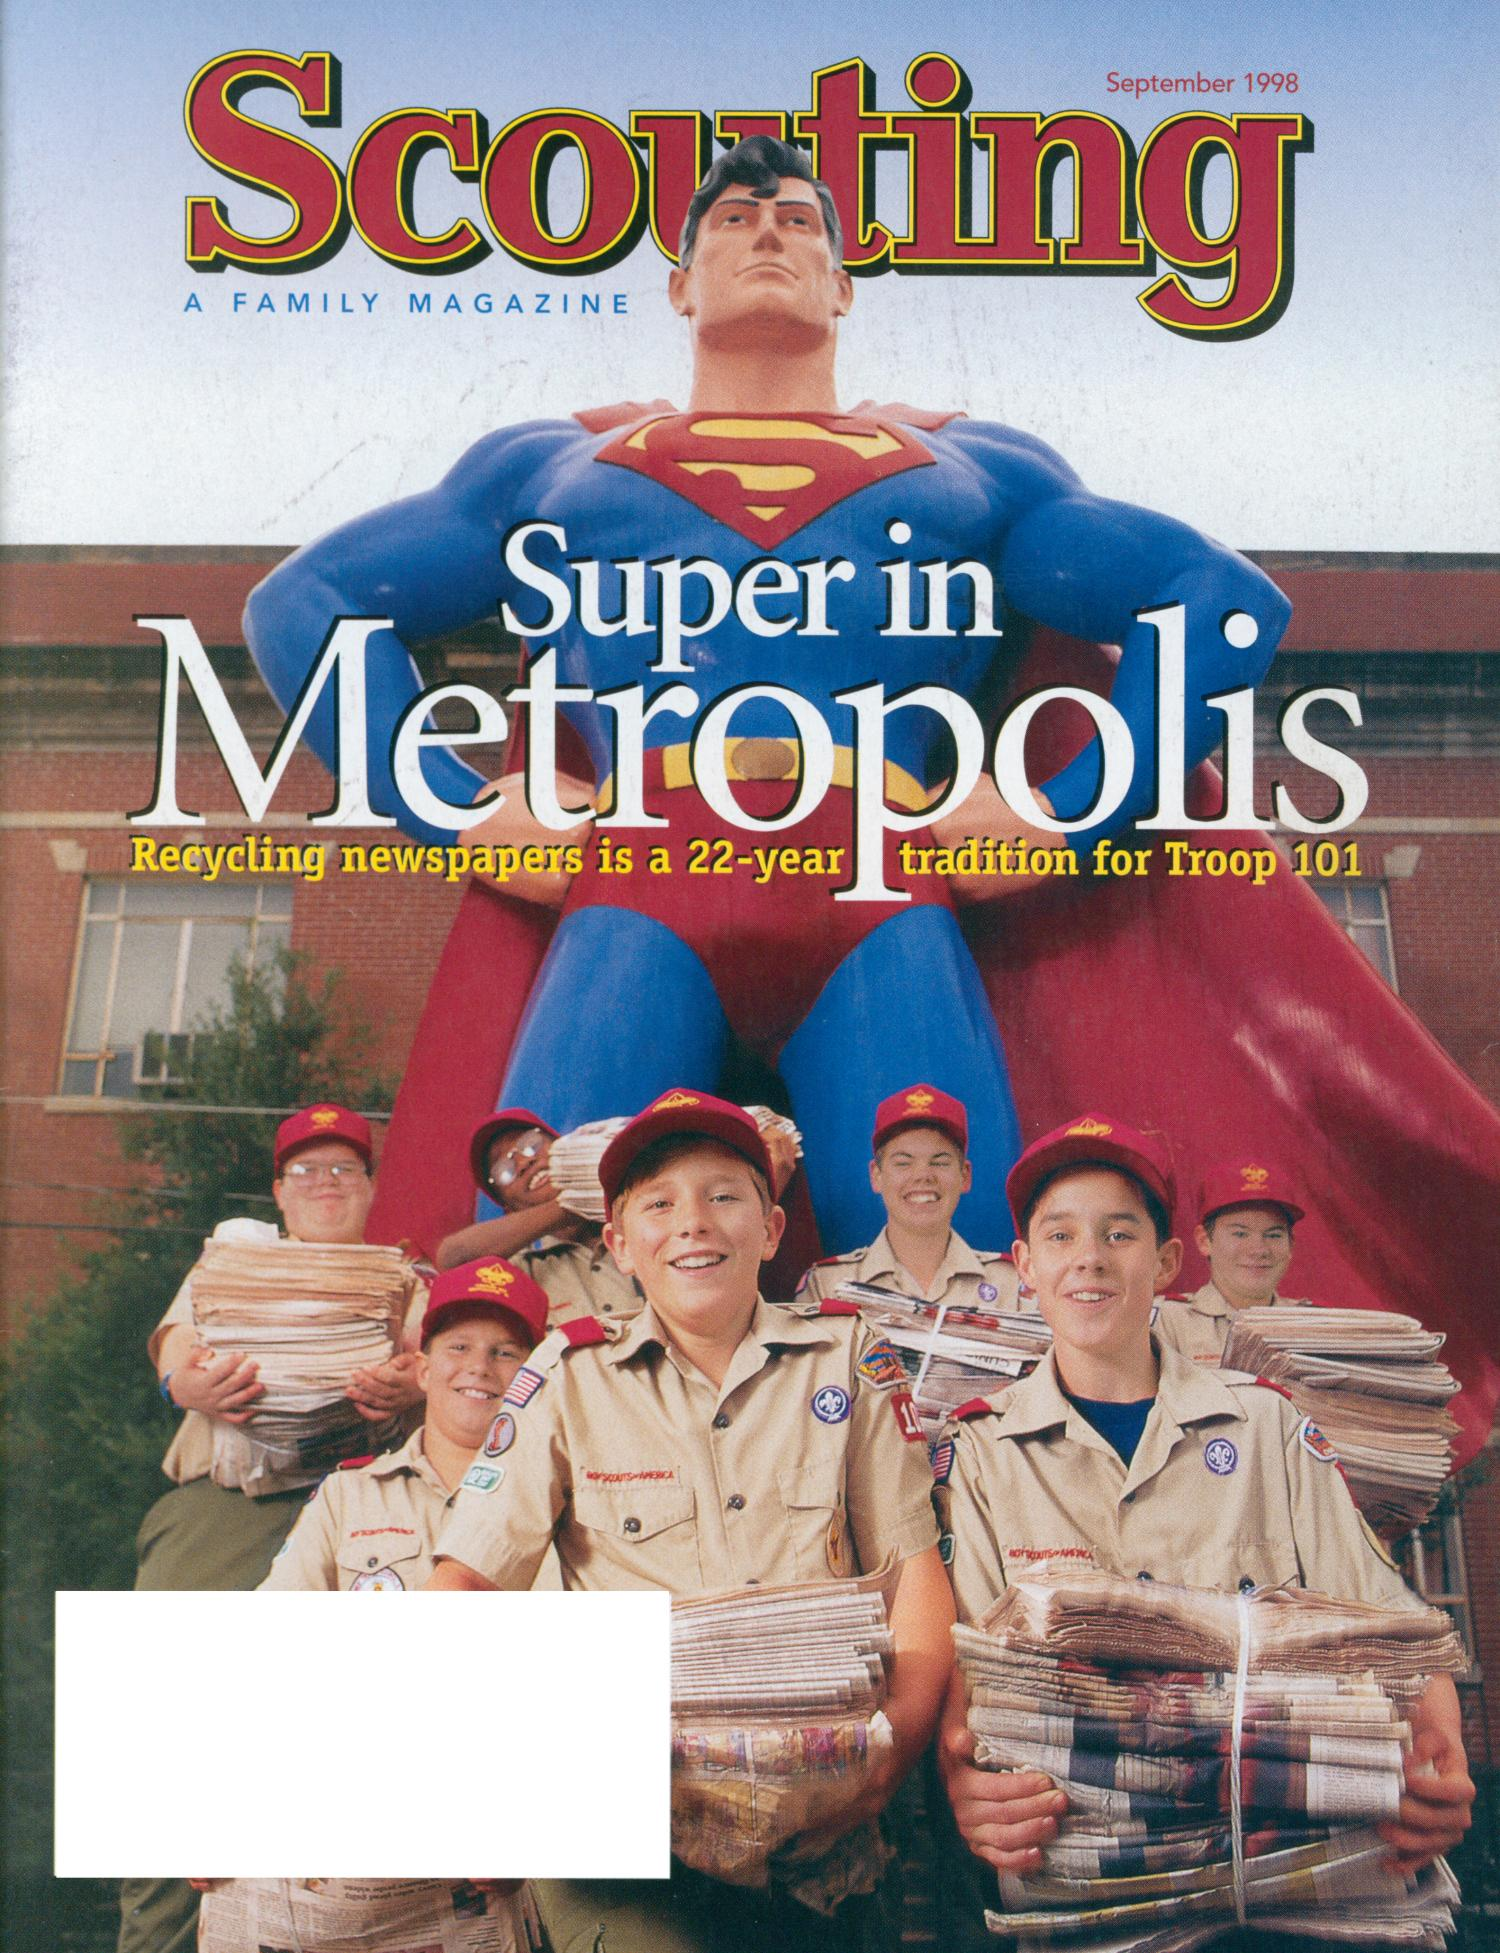 Scouting, Volume 86, Number 4, September 1998                                                                                                      Front Cover